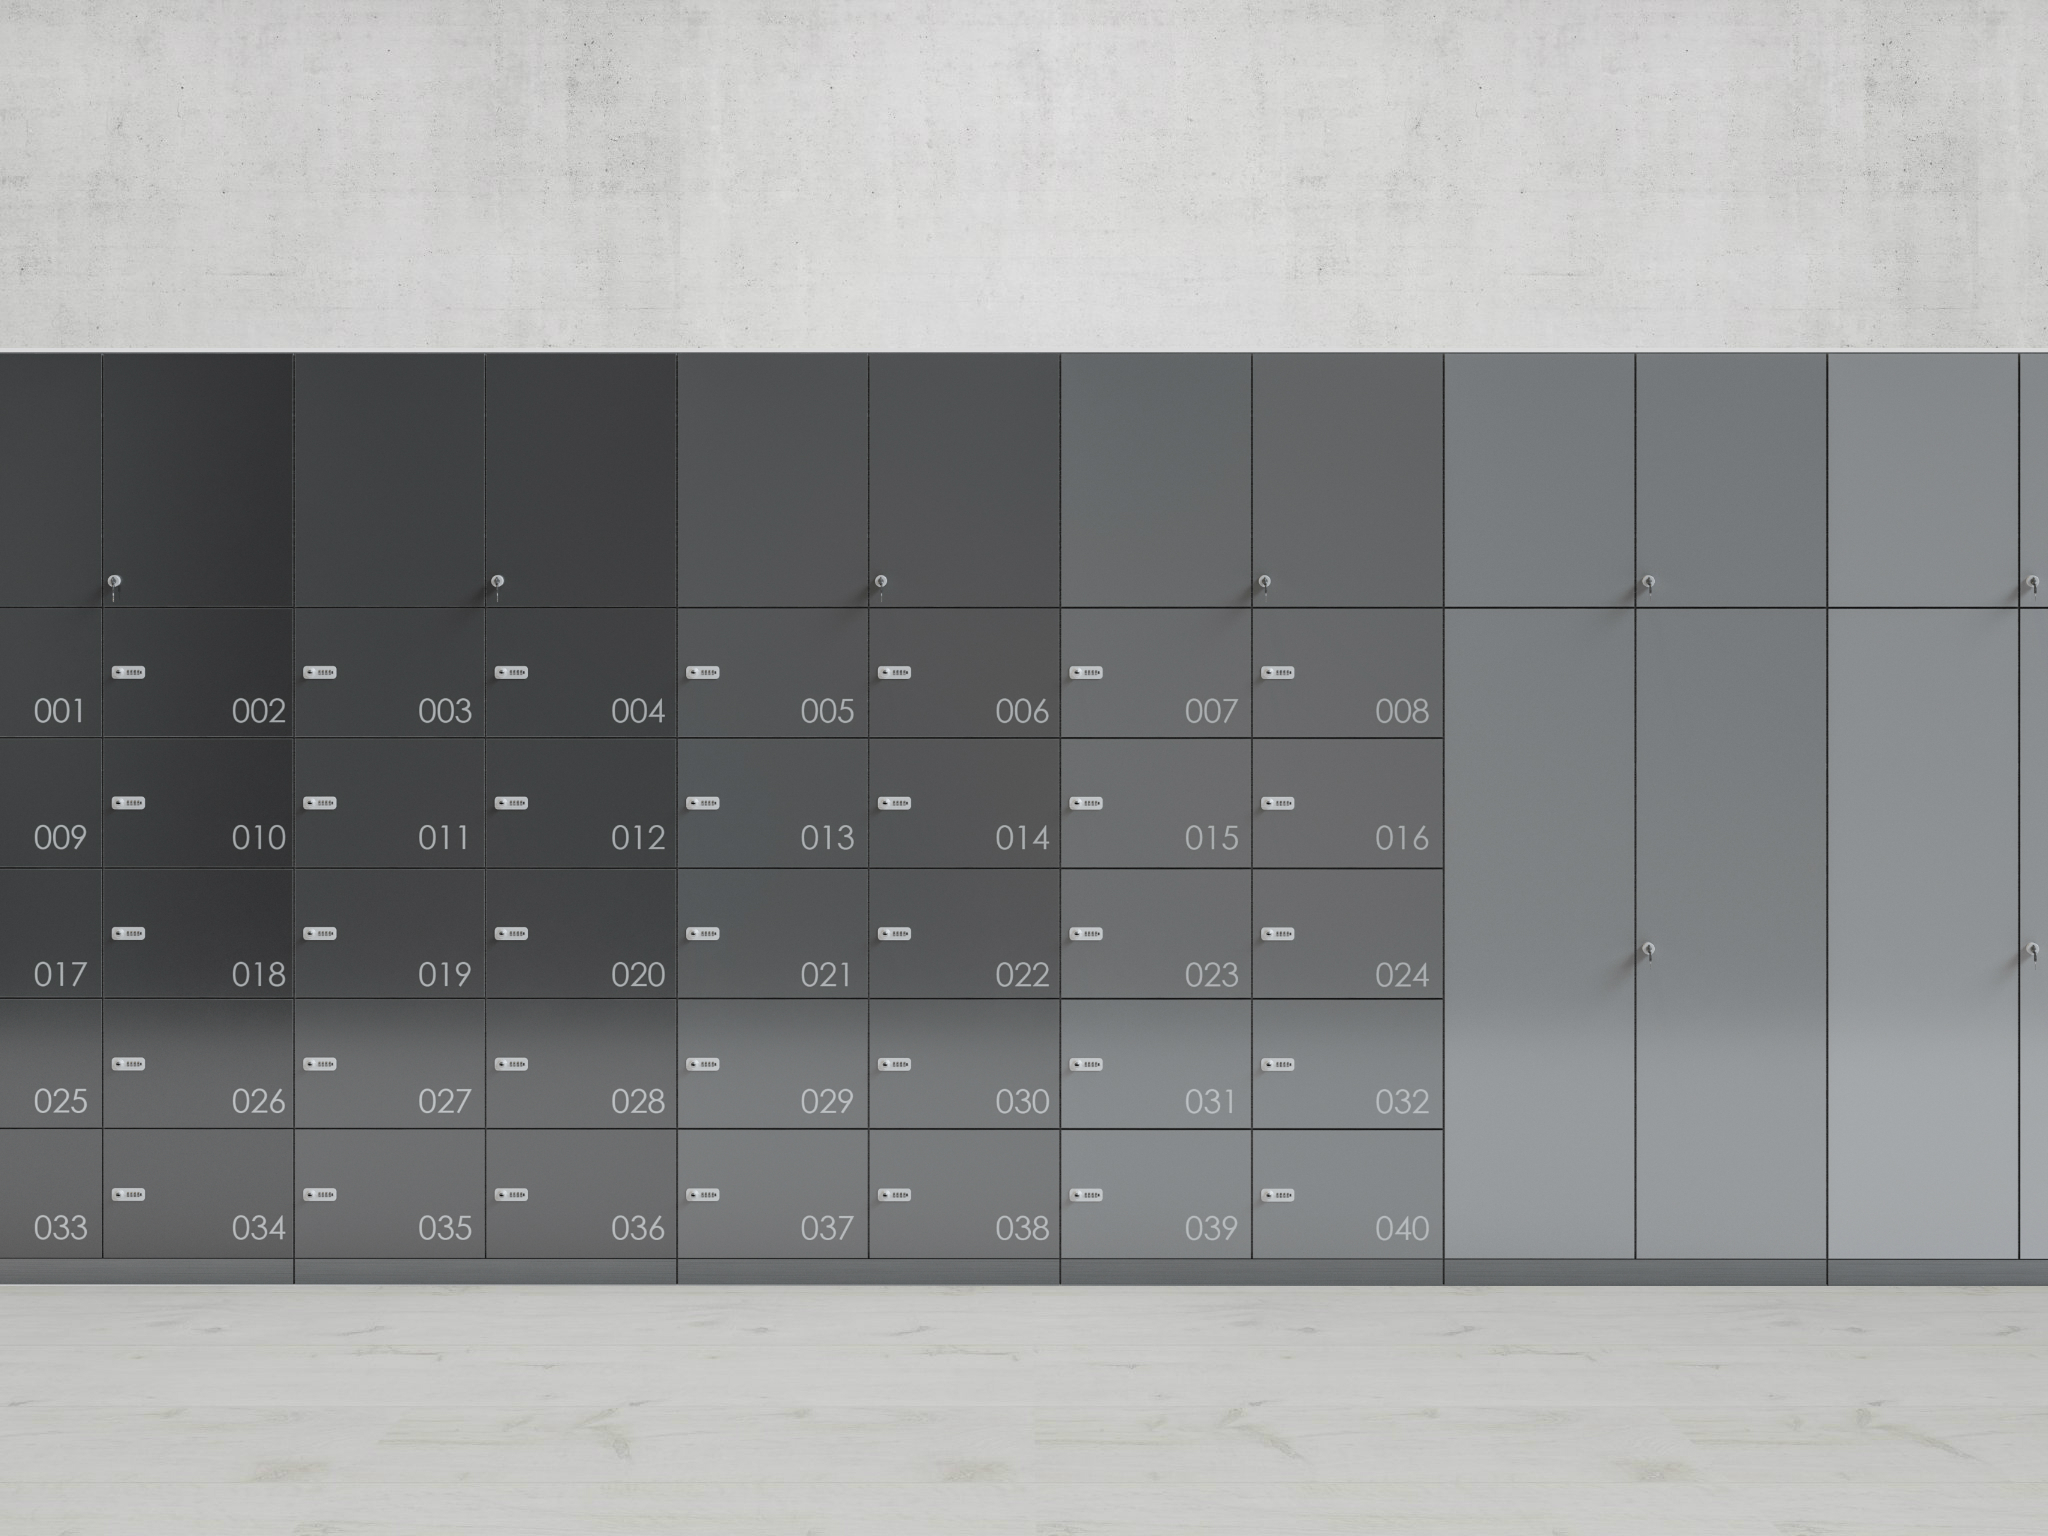 Digilock RFID Lockers